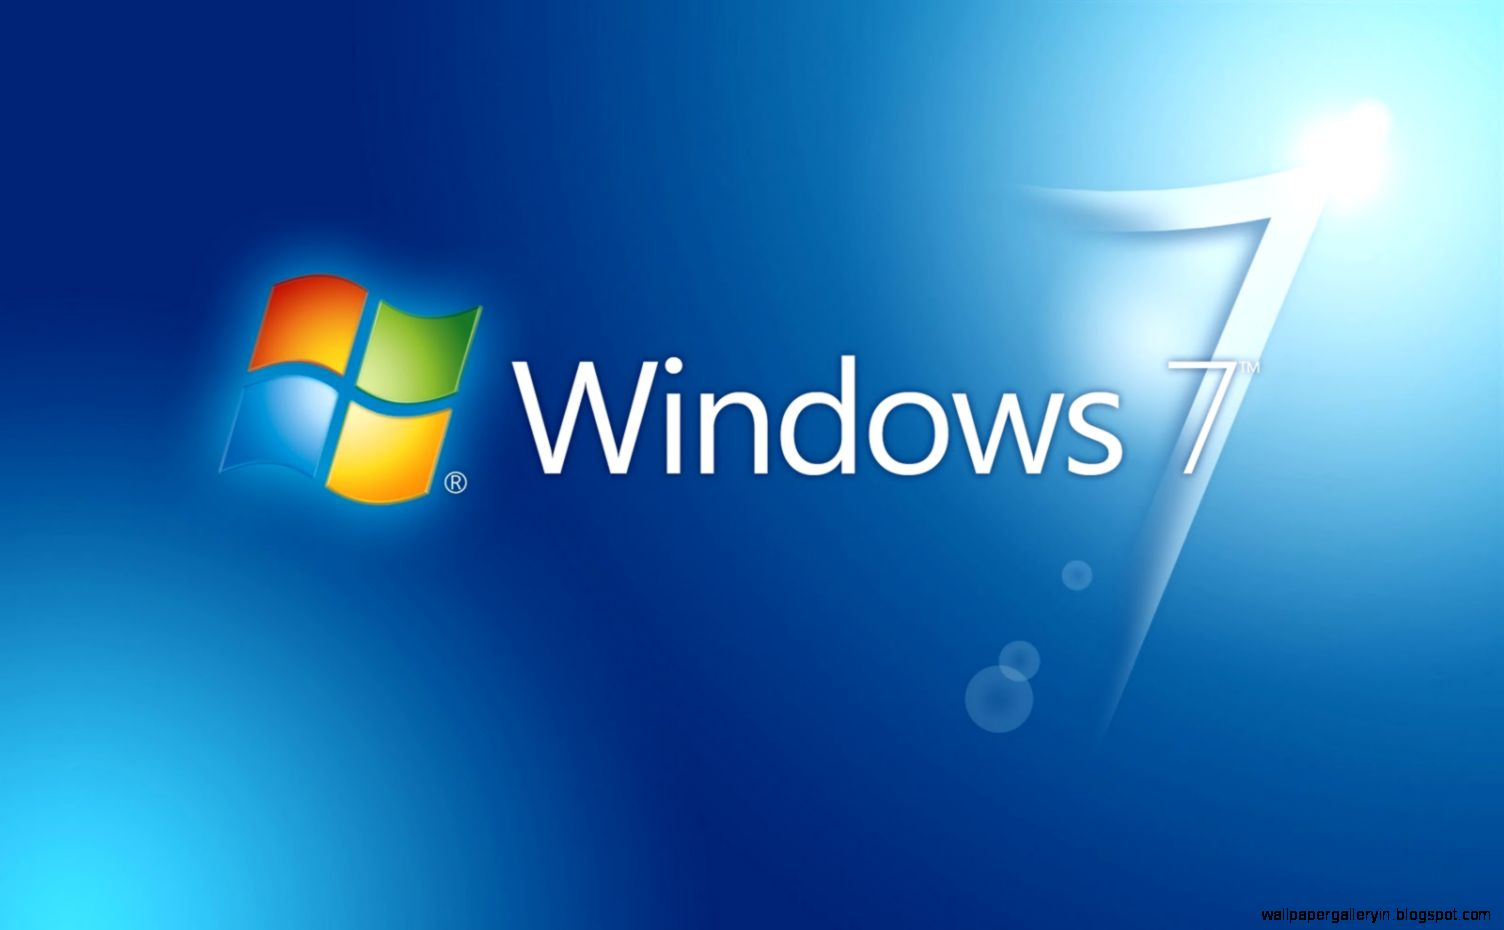 Live Wallpaper Windows 7 620 Wallpaper